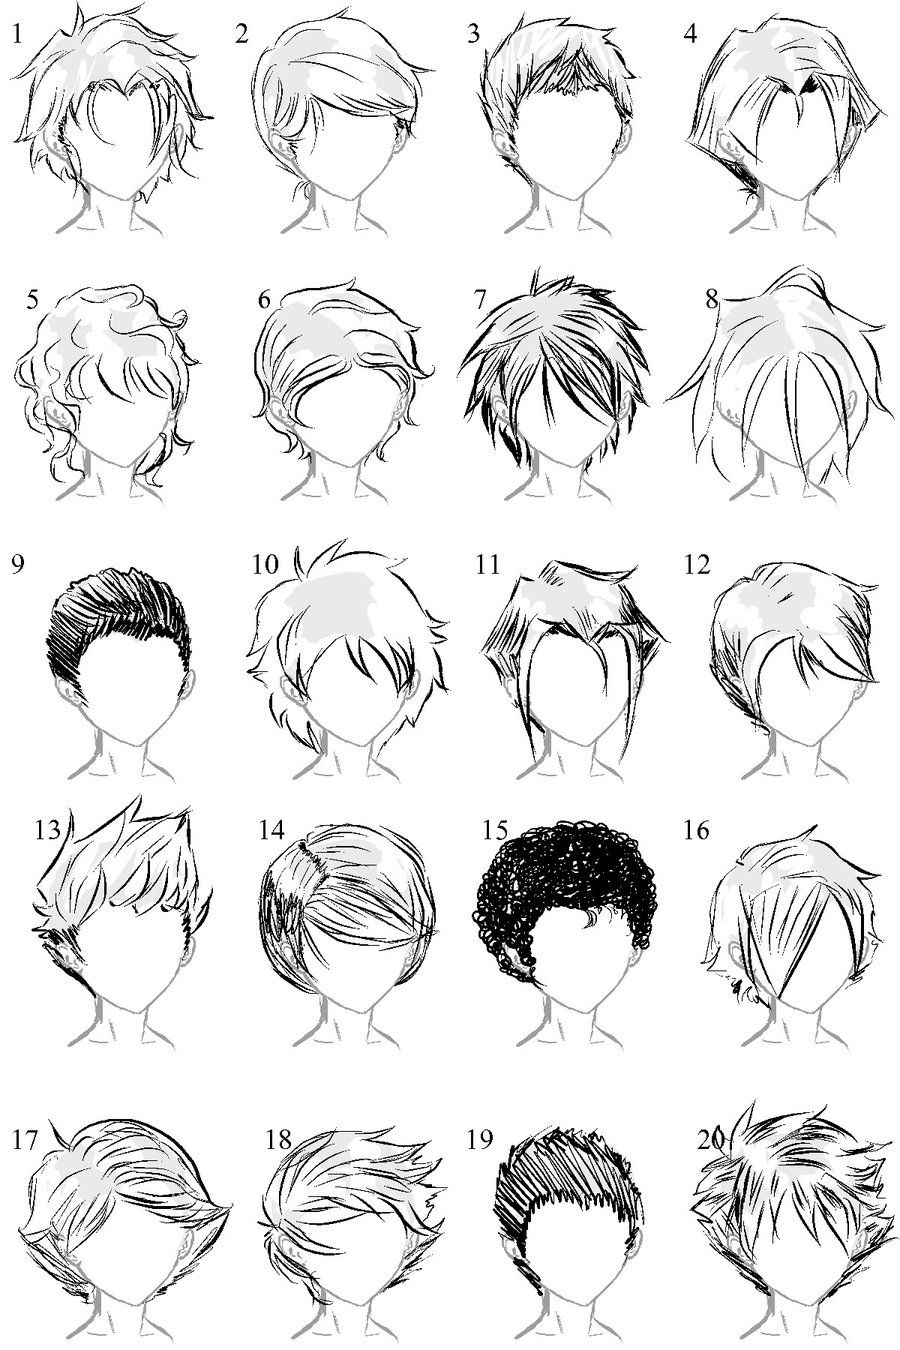 20 more male hairstyles by lazycatsleepsdaily on deviantart